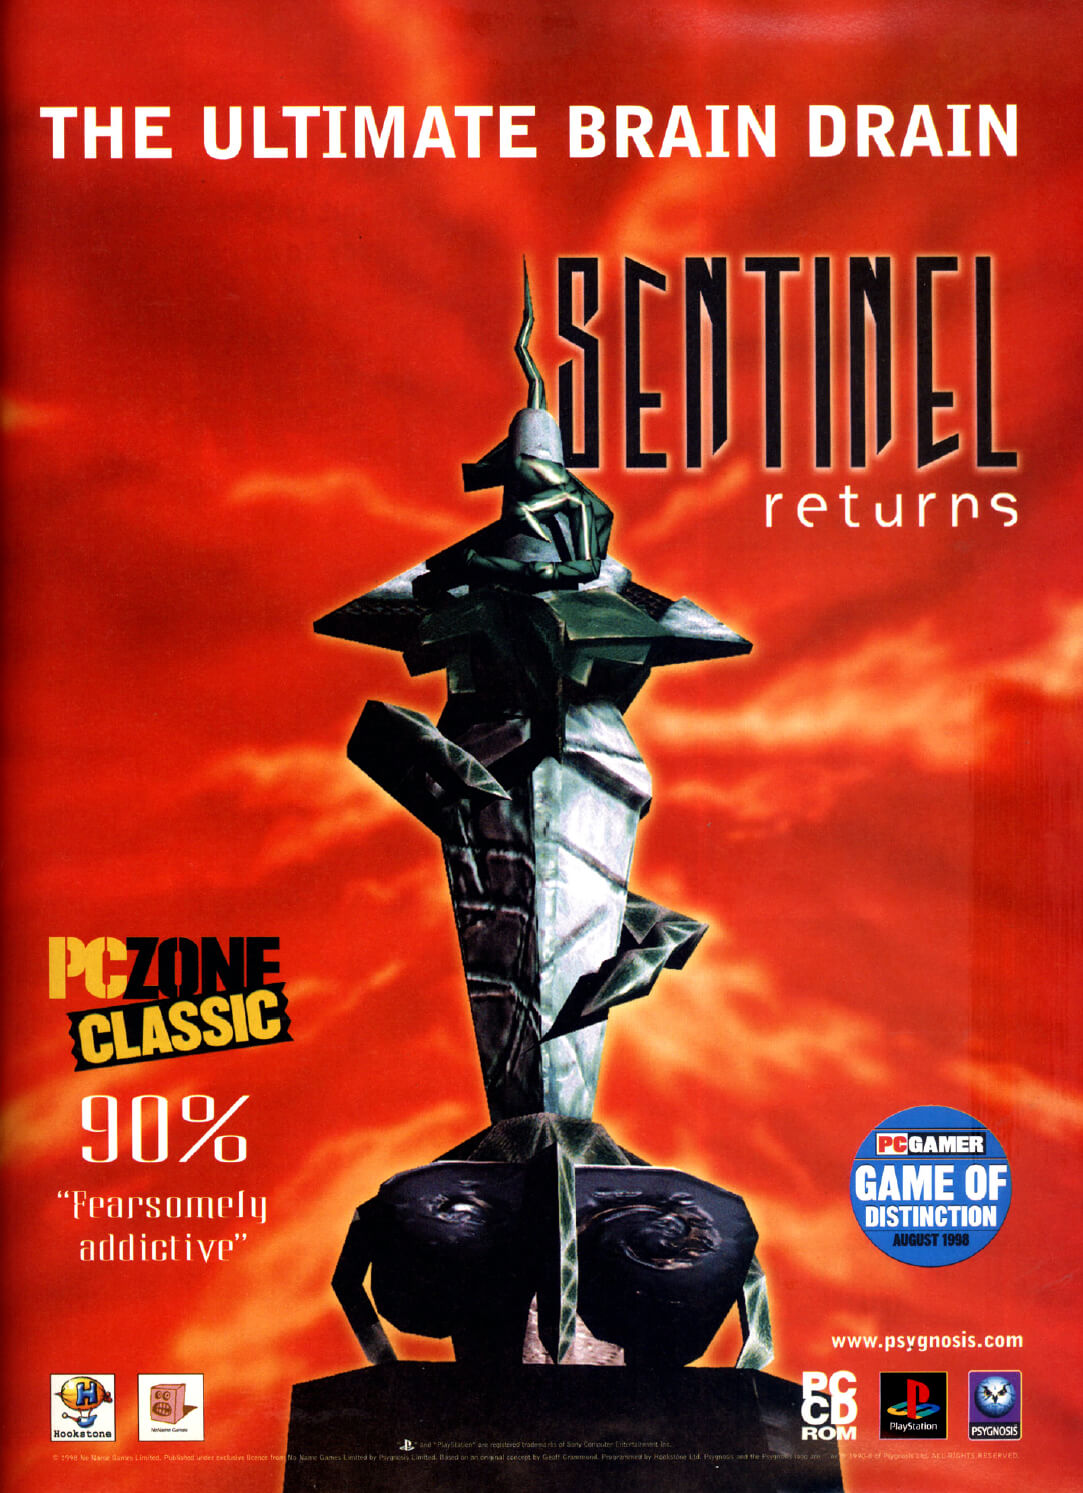 """Sentinel Returns is based on the game Sentinel https://imgchest.com/p/6pg73ployrn , a classic 8-bit micro game written by legendary Geoff Crammond (REVS, Grand Prix), which was initially released for the BBC microcomputer.   **Gameplay**   The gameplay is virtually unchanged in this sequel, though modern hardware definitely adds some spice and speed to the highly original and surreal concept.  Enter a surreal world where you must battle the Sentinel and his sentries over 650 checkered, 3D landscapes. Energy and movement are completely redefined in this unique blend of arcade and strategy elements. You, only known as an intelligent presence, move about the landscape by teleporting between robot """"hulls"""".   Any object in your field of vision can be absorbed for energy, as long as you also see the square of the landscape that the object is standing on. By aiming at any square your can see, and spending energy, you can create a new robot hull and teleport your presence to it, or you can create neutral objects: trees to block yourself from the Sentinel's gaze, or boulders that can be stacked.   You gain height in the landscape by creating a robot on top of a stack of boulders, until you can see the Sentinel's square at the highest point in the landscape and absorb him. The problem is that the Sentinel slowly rotates and ruthlessly absorbs anything in his field of vision that is more potent than a tree, including yourself. In later levels, his sentries will threaten you with absorption from several directions.   """"Sentinel"""" and """"Sentinel Returns"""" are games you either love or hate, due to their uniqueness and surreal nature."""